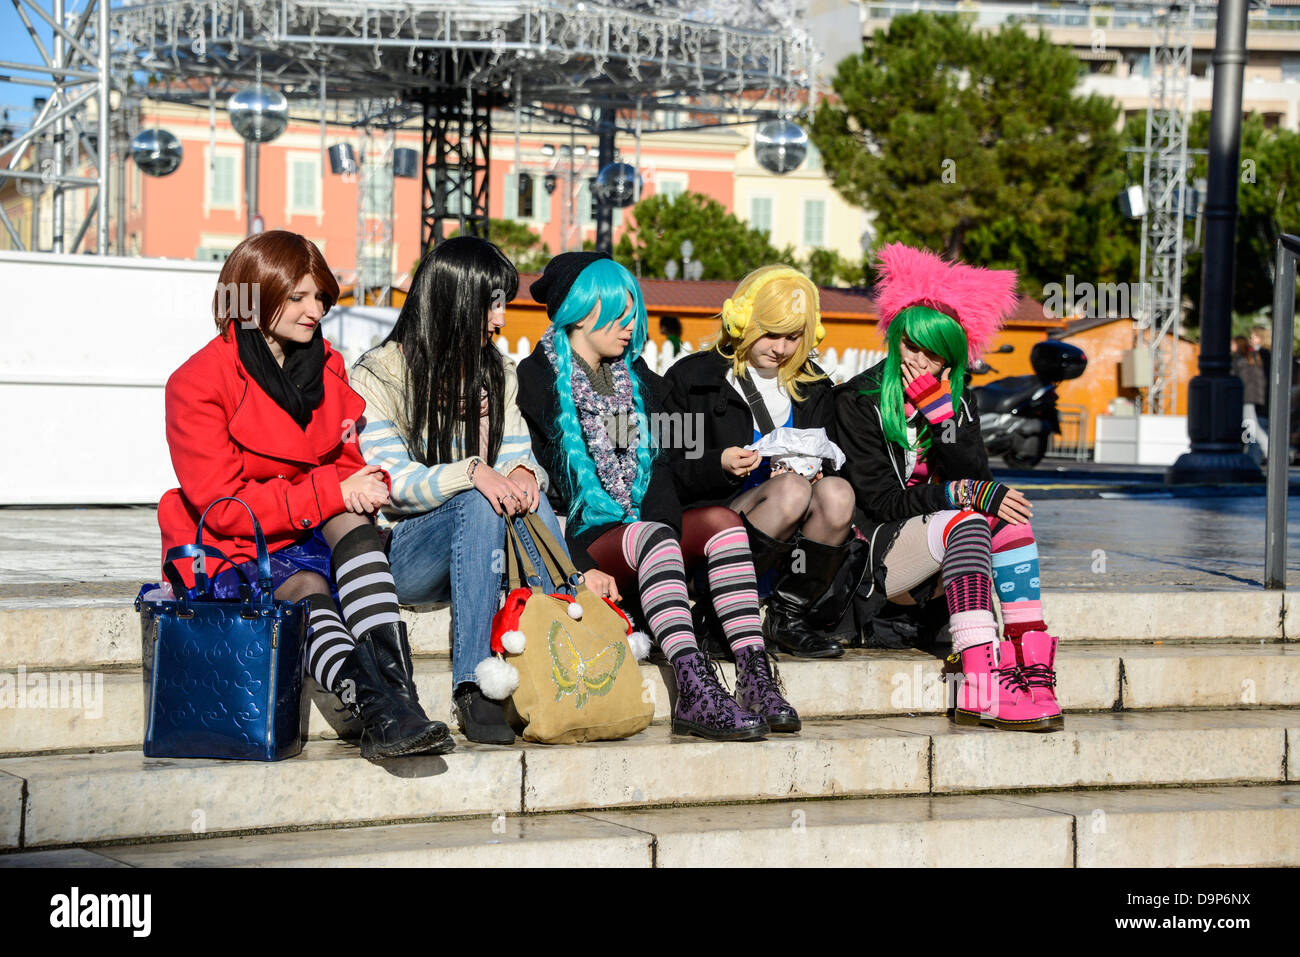 Young girls dressed up as punk rockers with multi colored wigs in Nice France - Stock Image